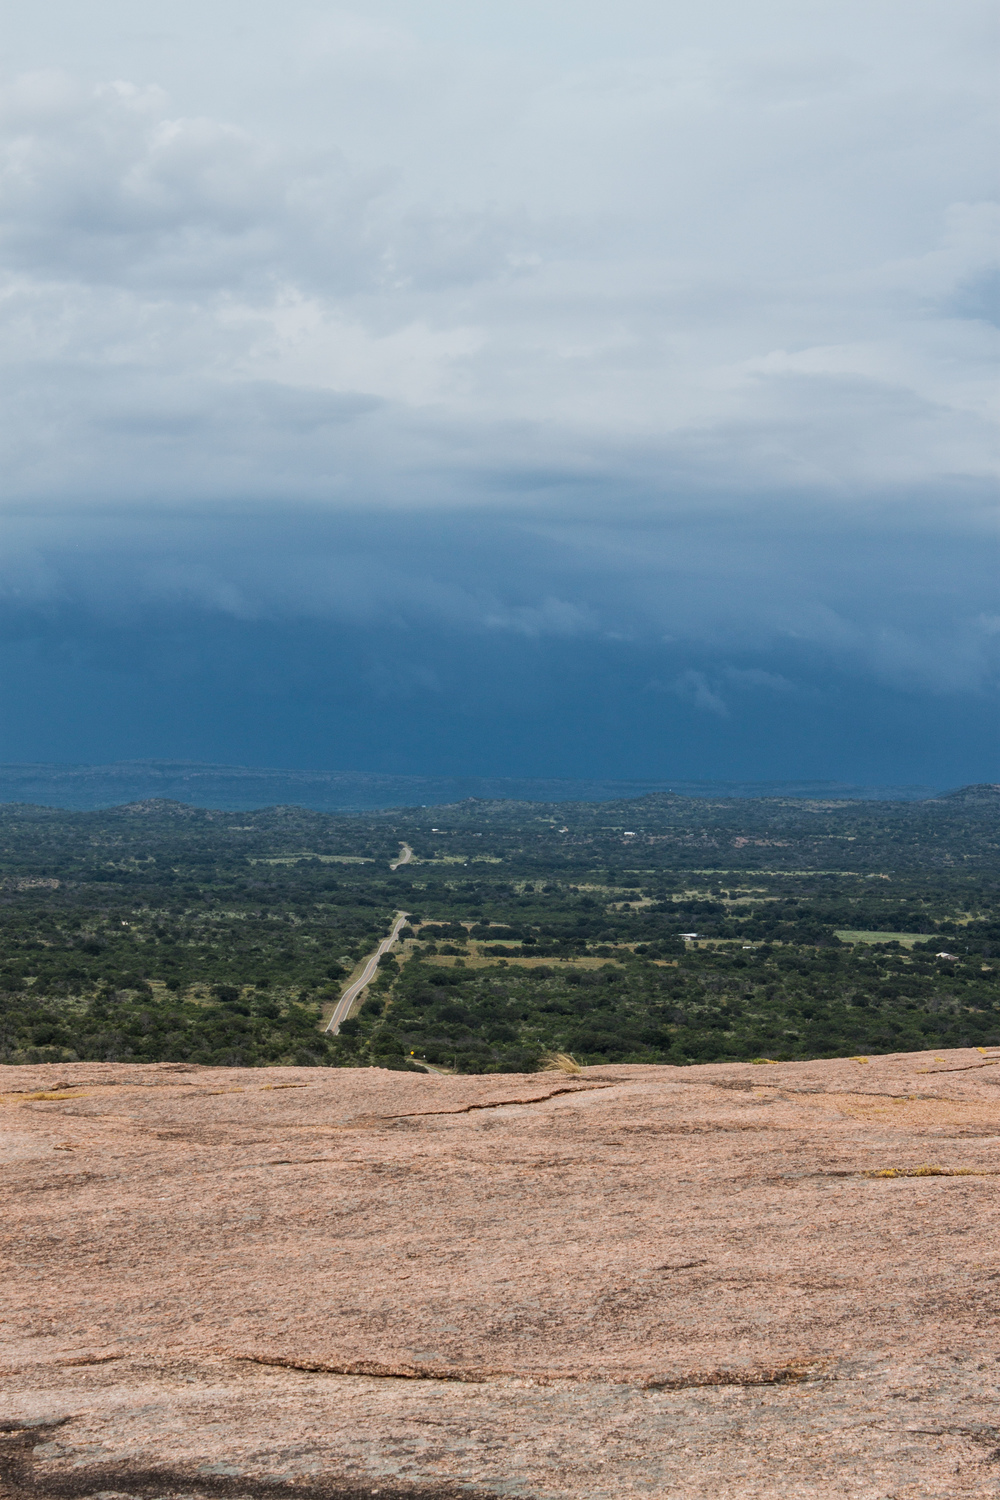 enchanted_rock-33.jpg